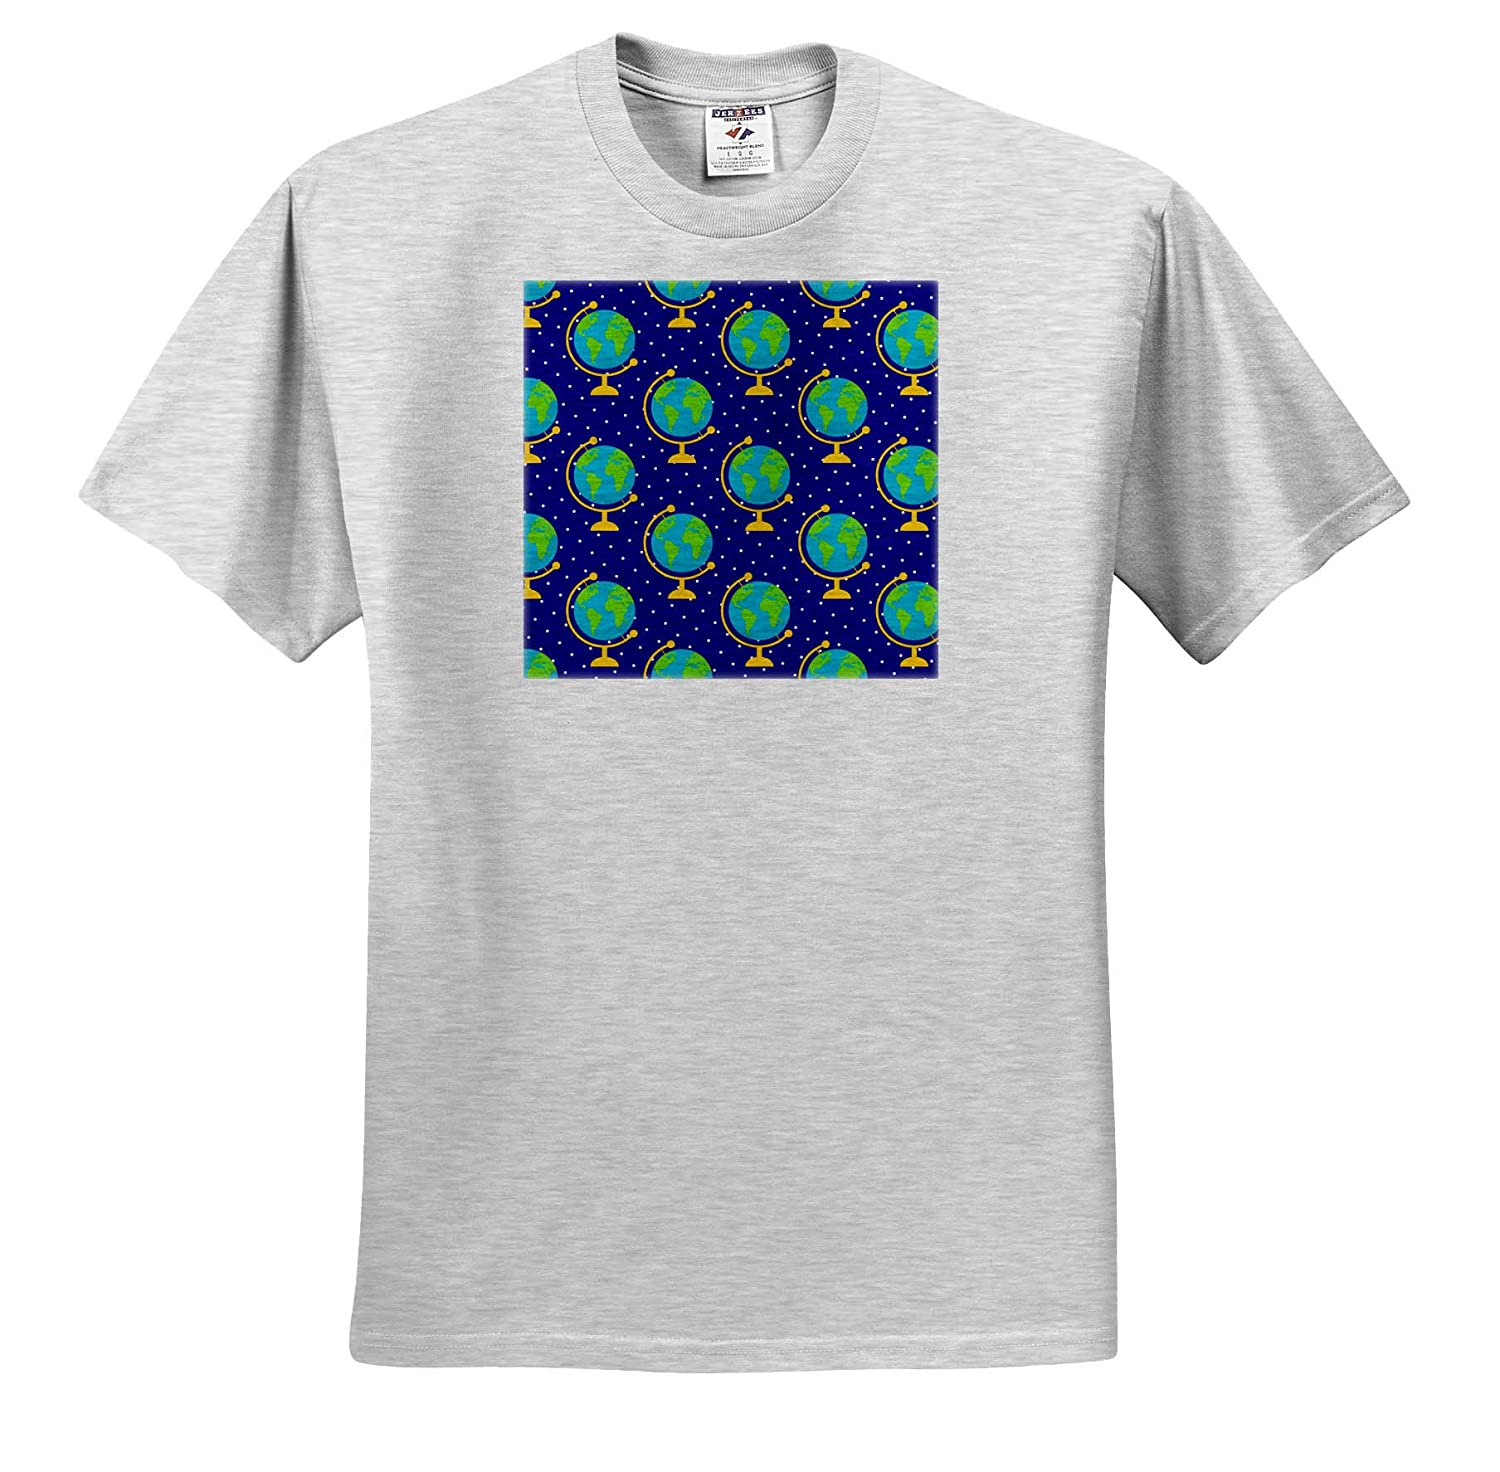 T-Shirts Pattern Back to School Back to School Pattern of Terrestrial Globes on Blue Background 3dRose Alexis Design